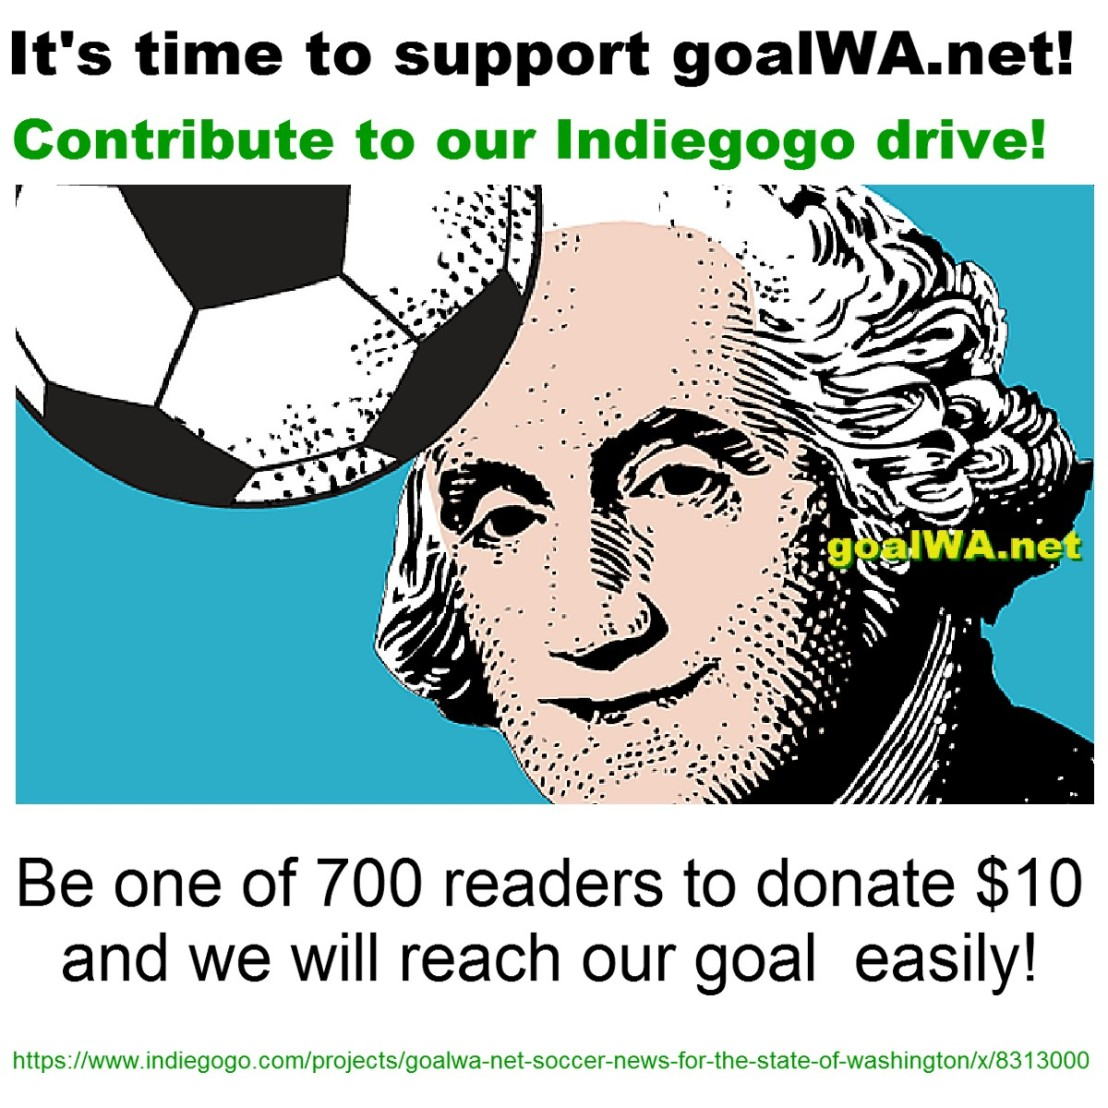 Support goalWA.net: Donate to our Indiegogocampaign!